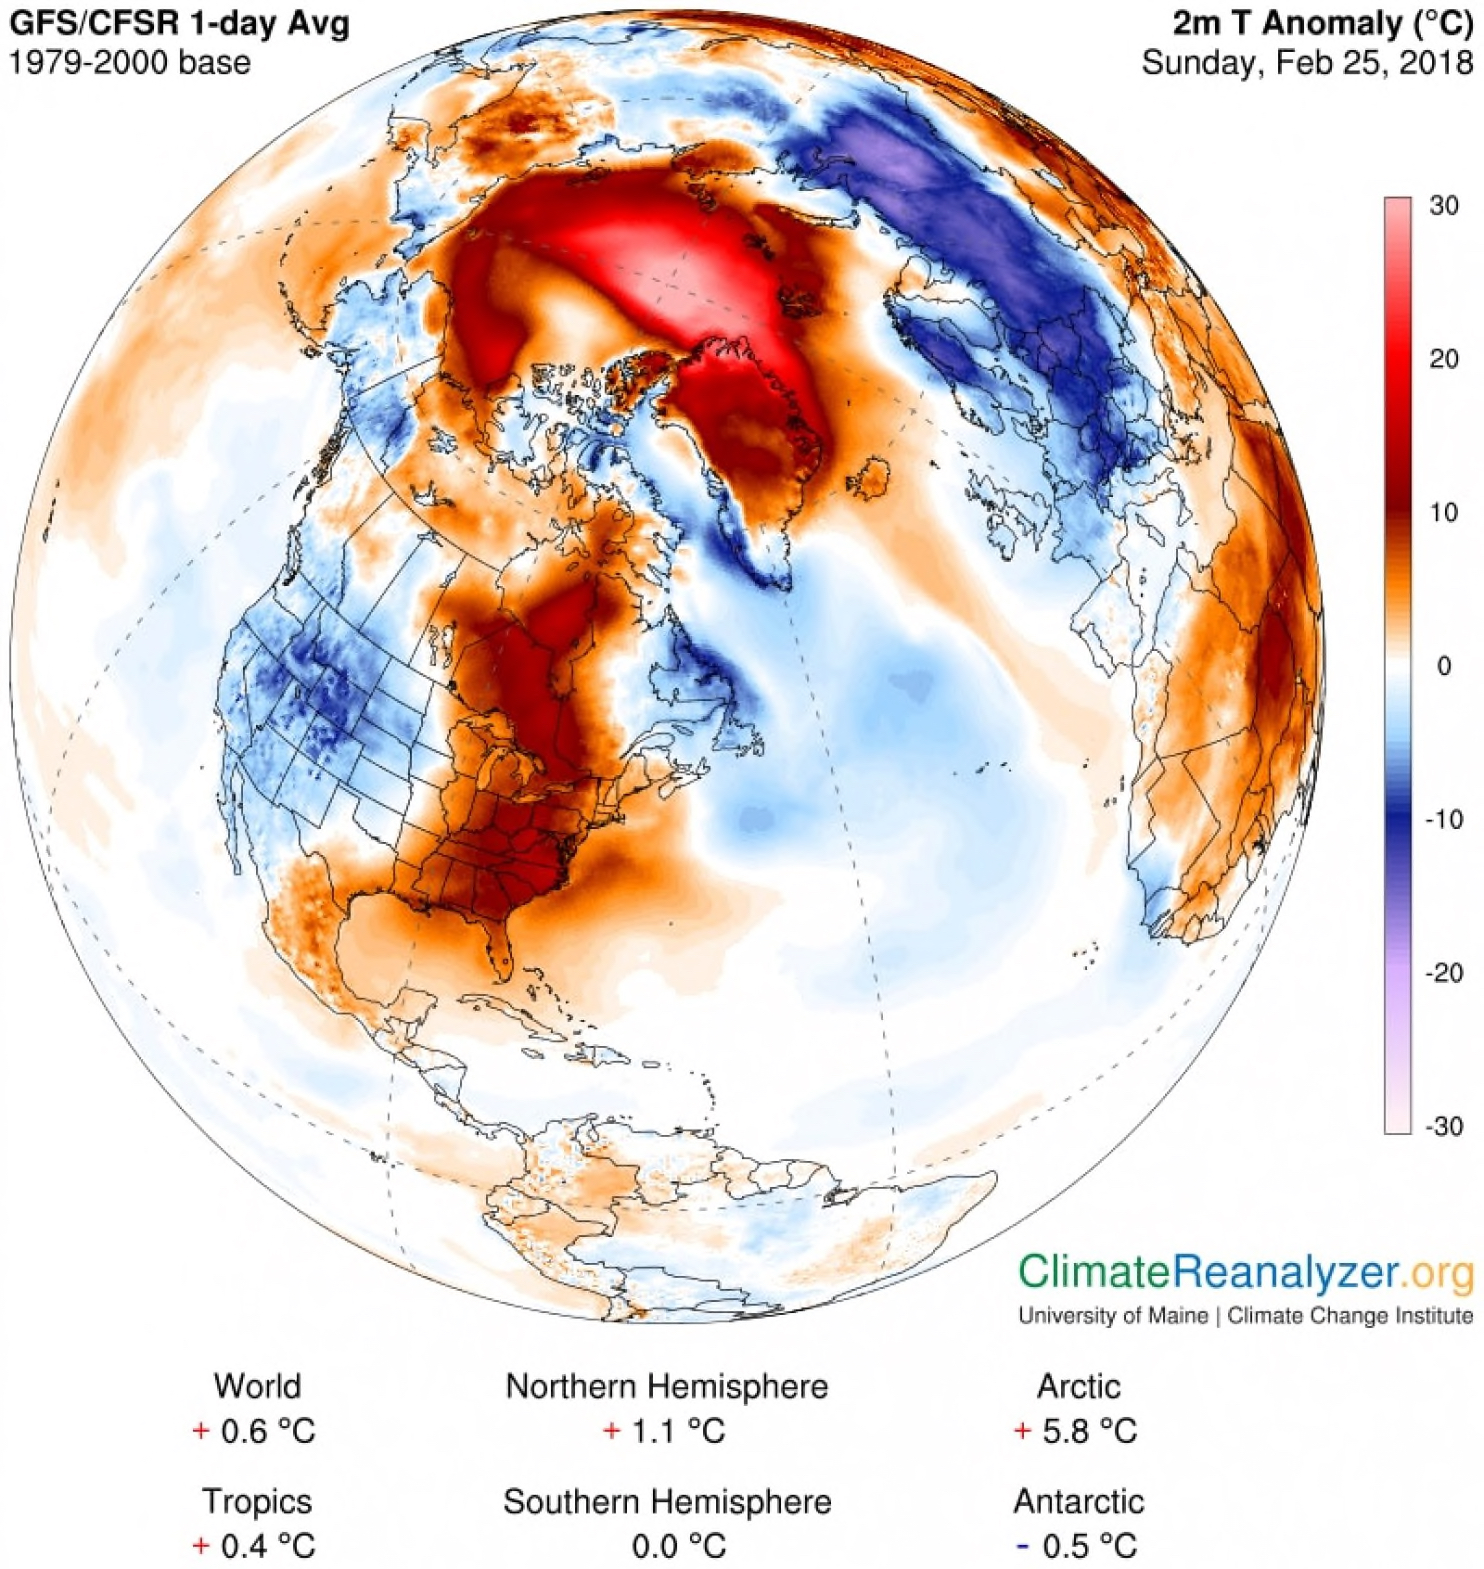 warming Arctic, melting Arctic, rising ocean temperatures, weather extremes